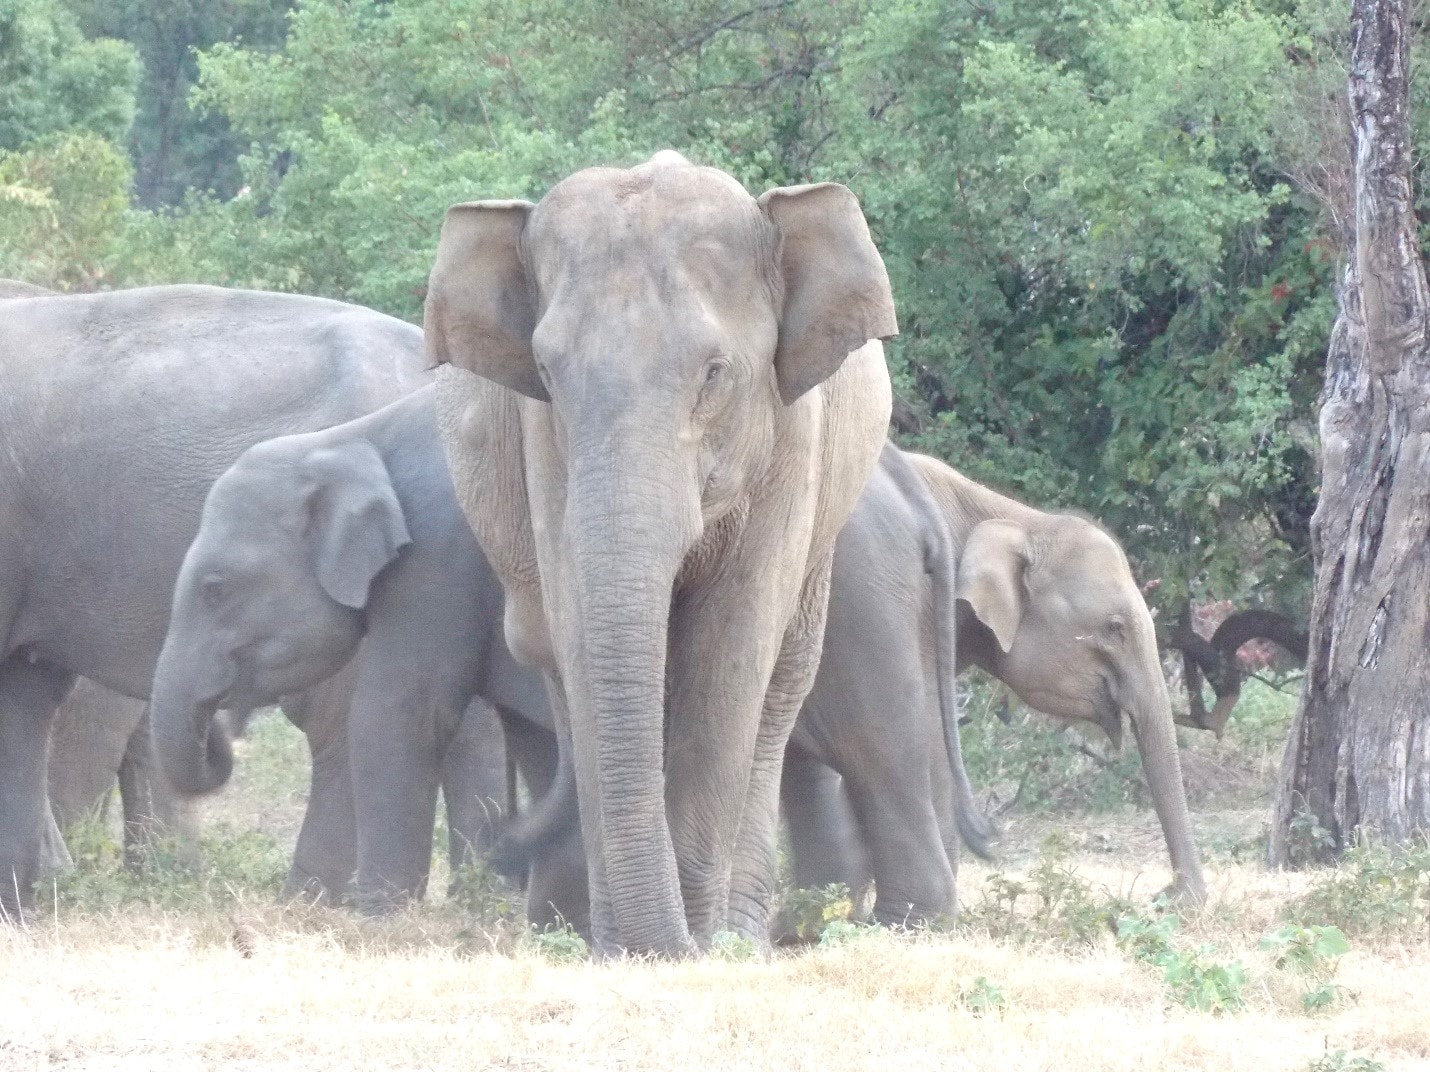 An elephant observed at the tank with large lumps due to gunshot trauma